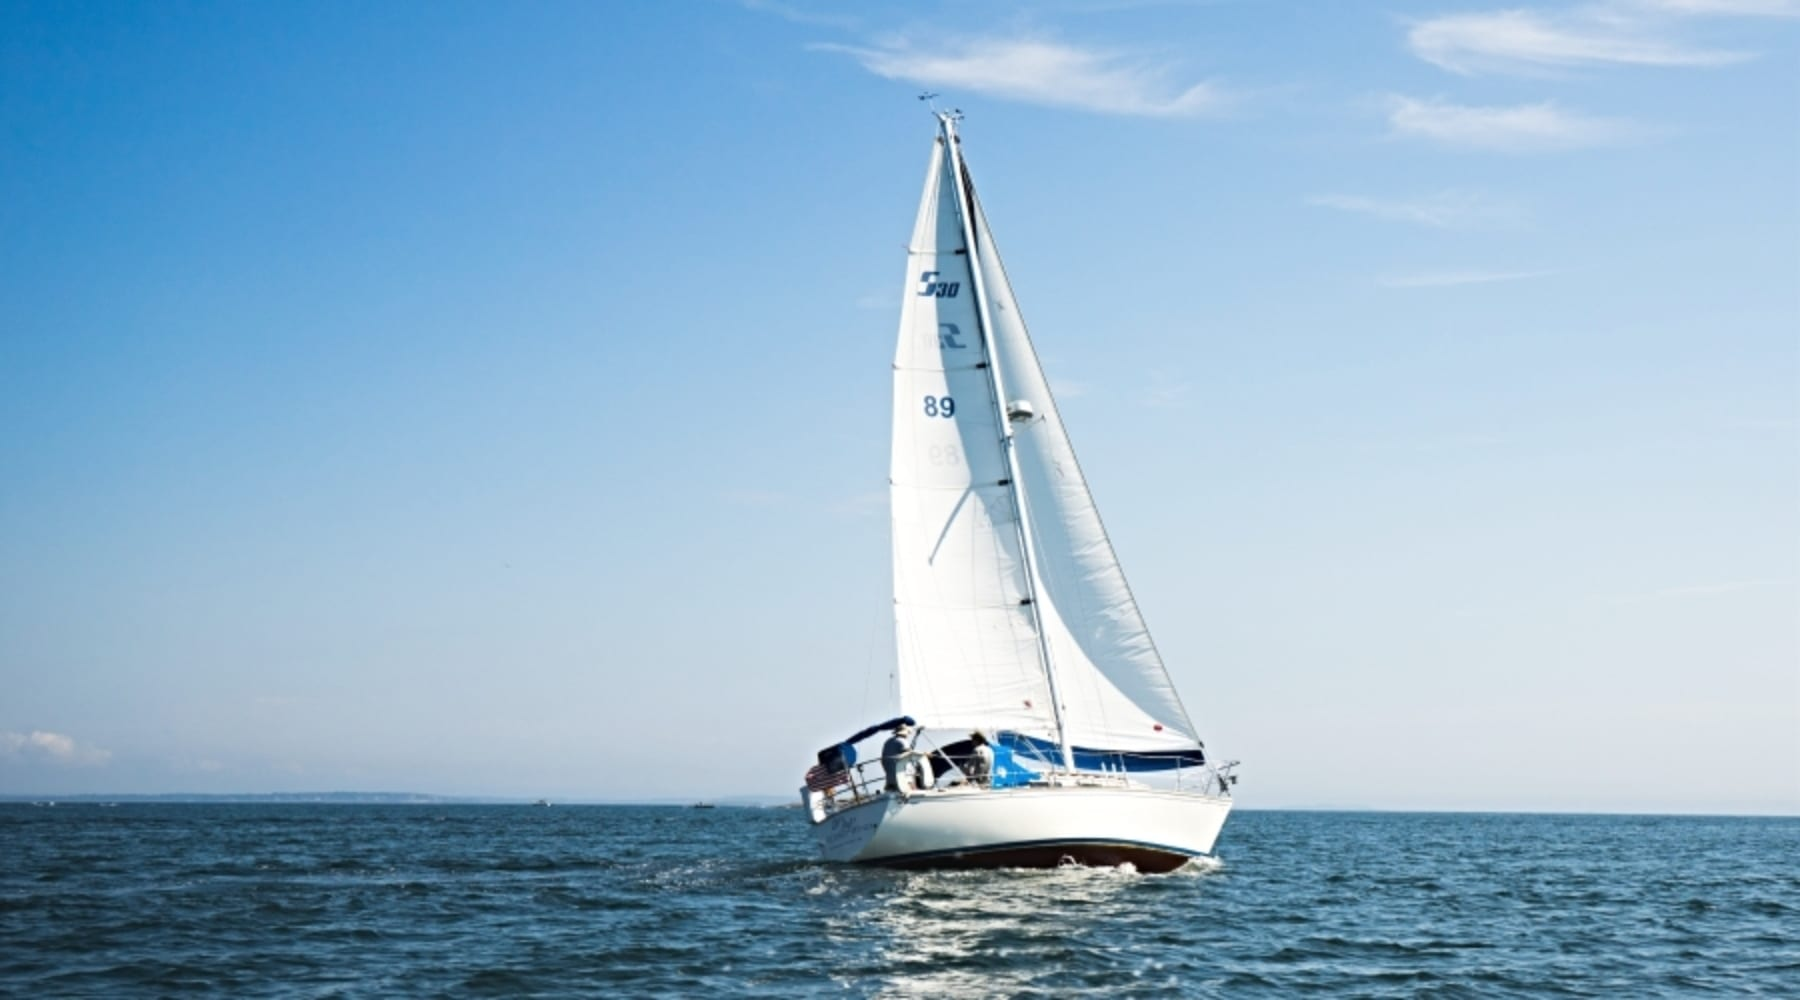 A Fresh Wind Blows: It's Time to Raise Your Sails